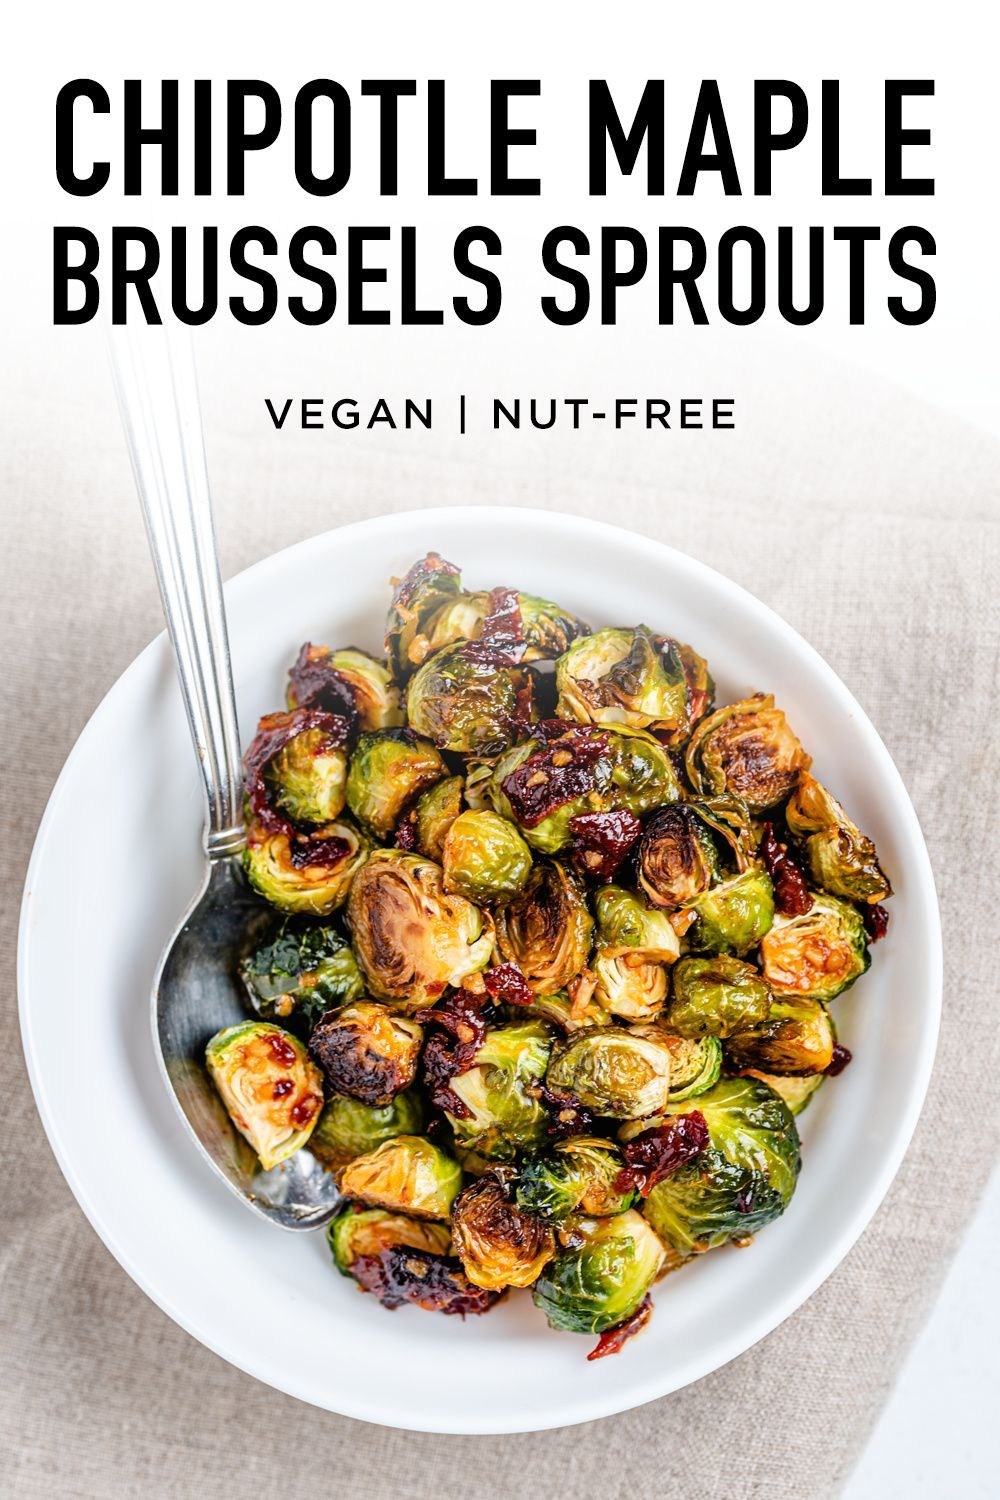 Chipotle Maple Brussels Sprouts The Nut Free Vegan Recipe In 2020 Side Dish Recipes Healthy Brussel Sprouts Veggie Side Dishes